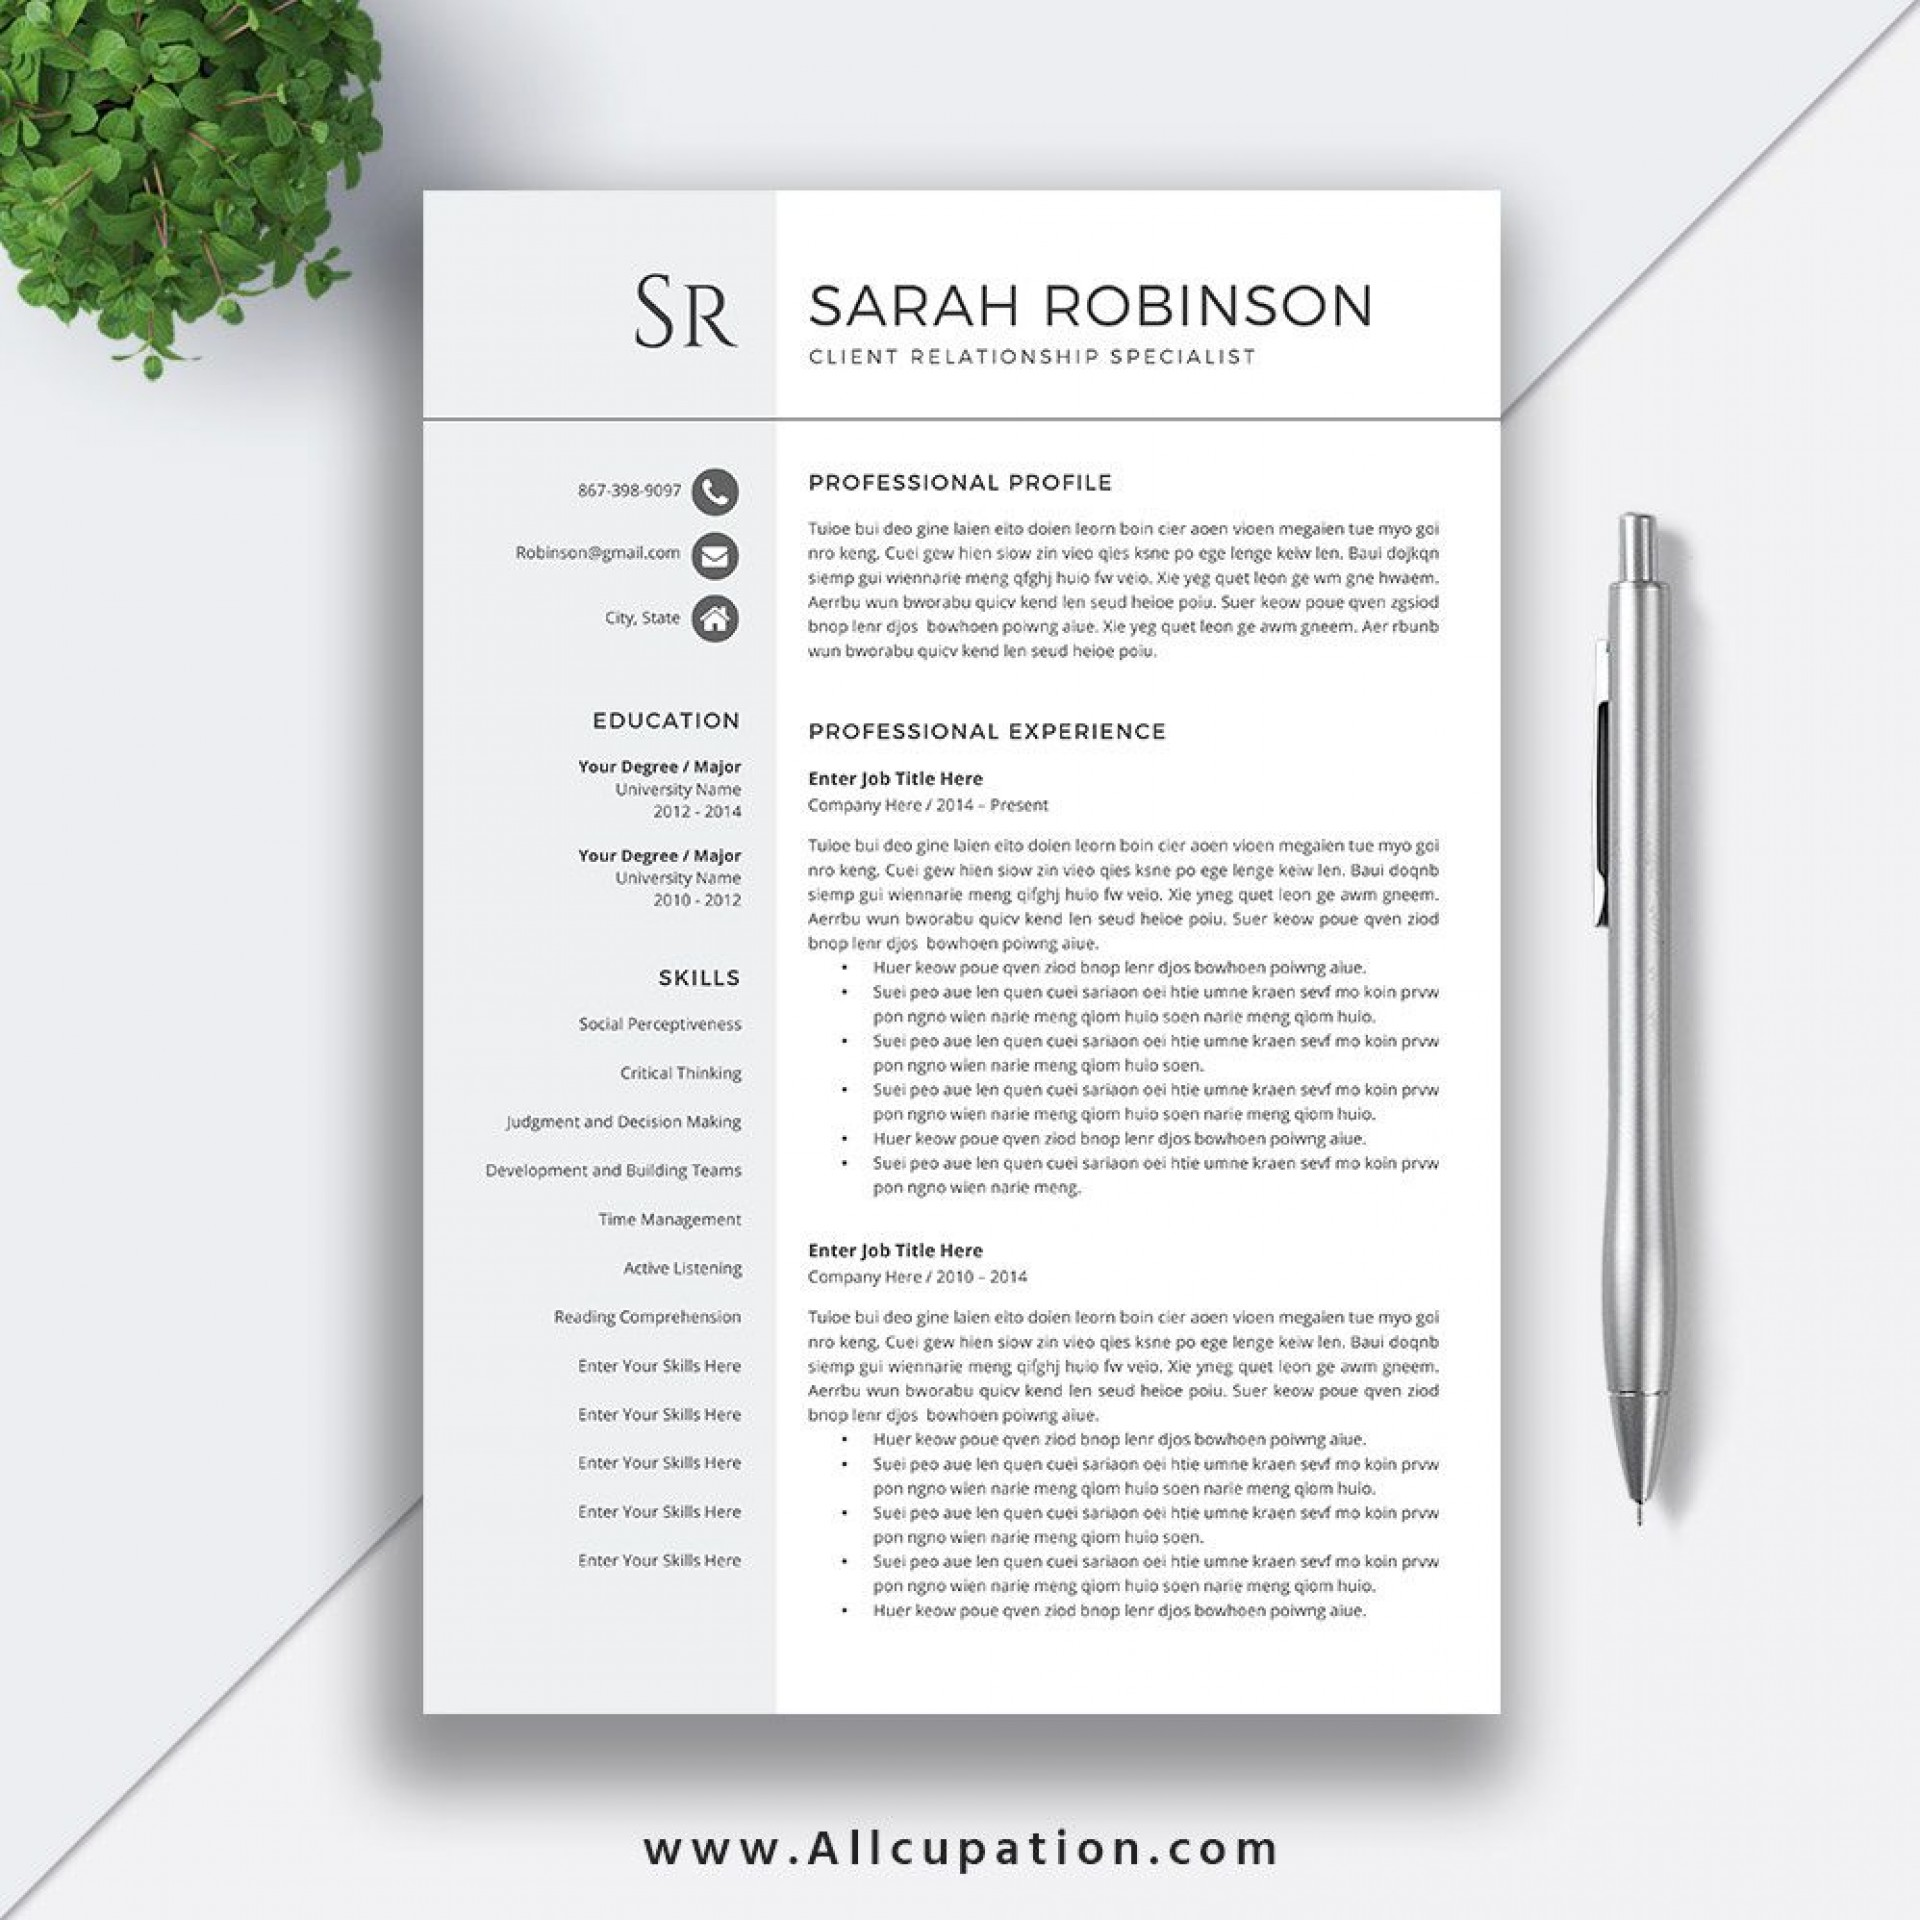 005 Awesome Best Resume Template 2020 Inspiration  Top Rated Free Download Reddit1920